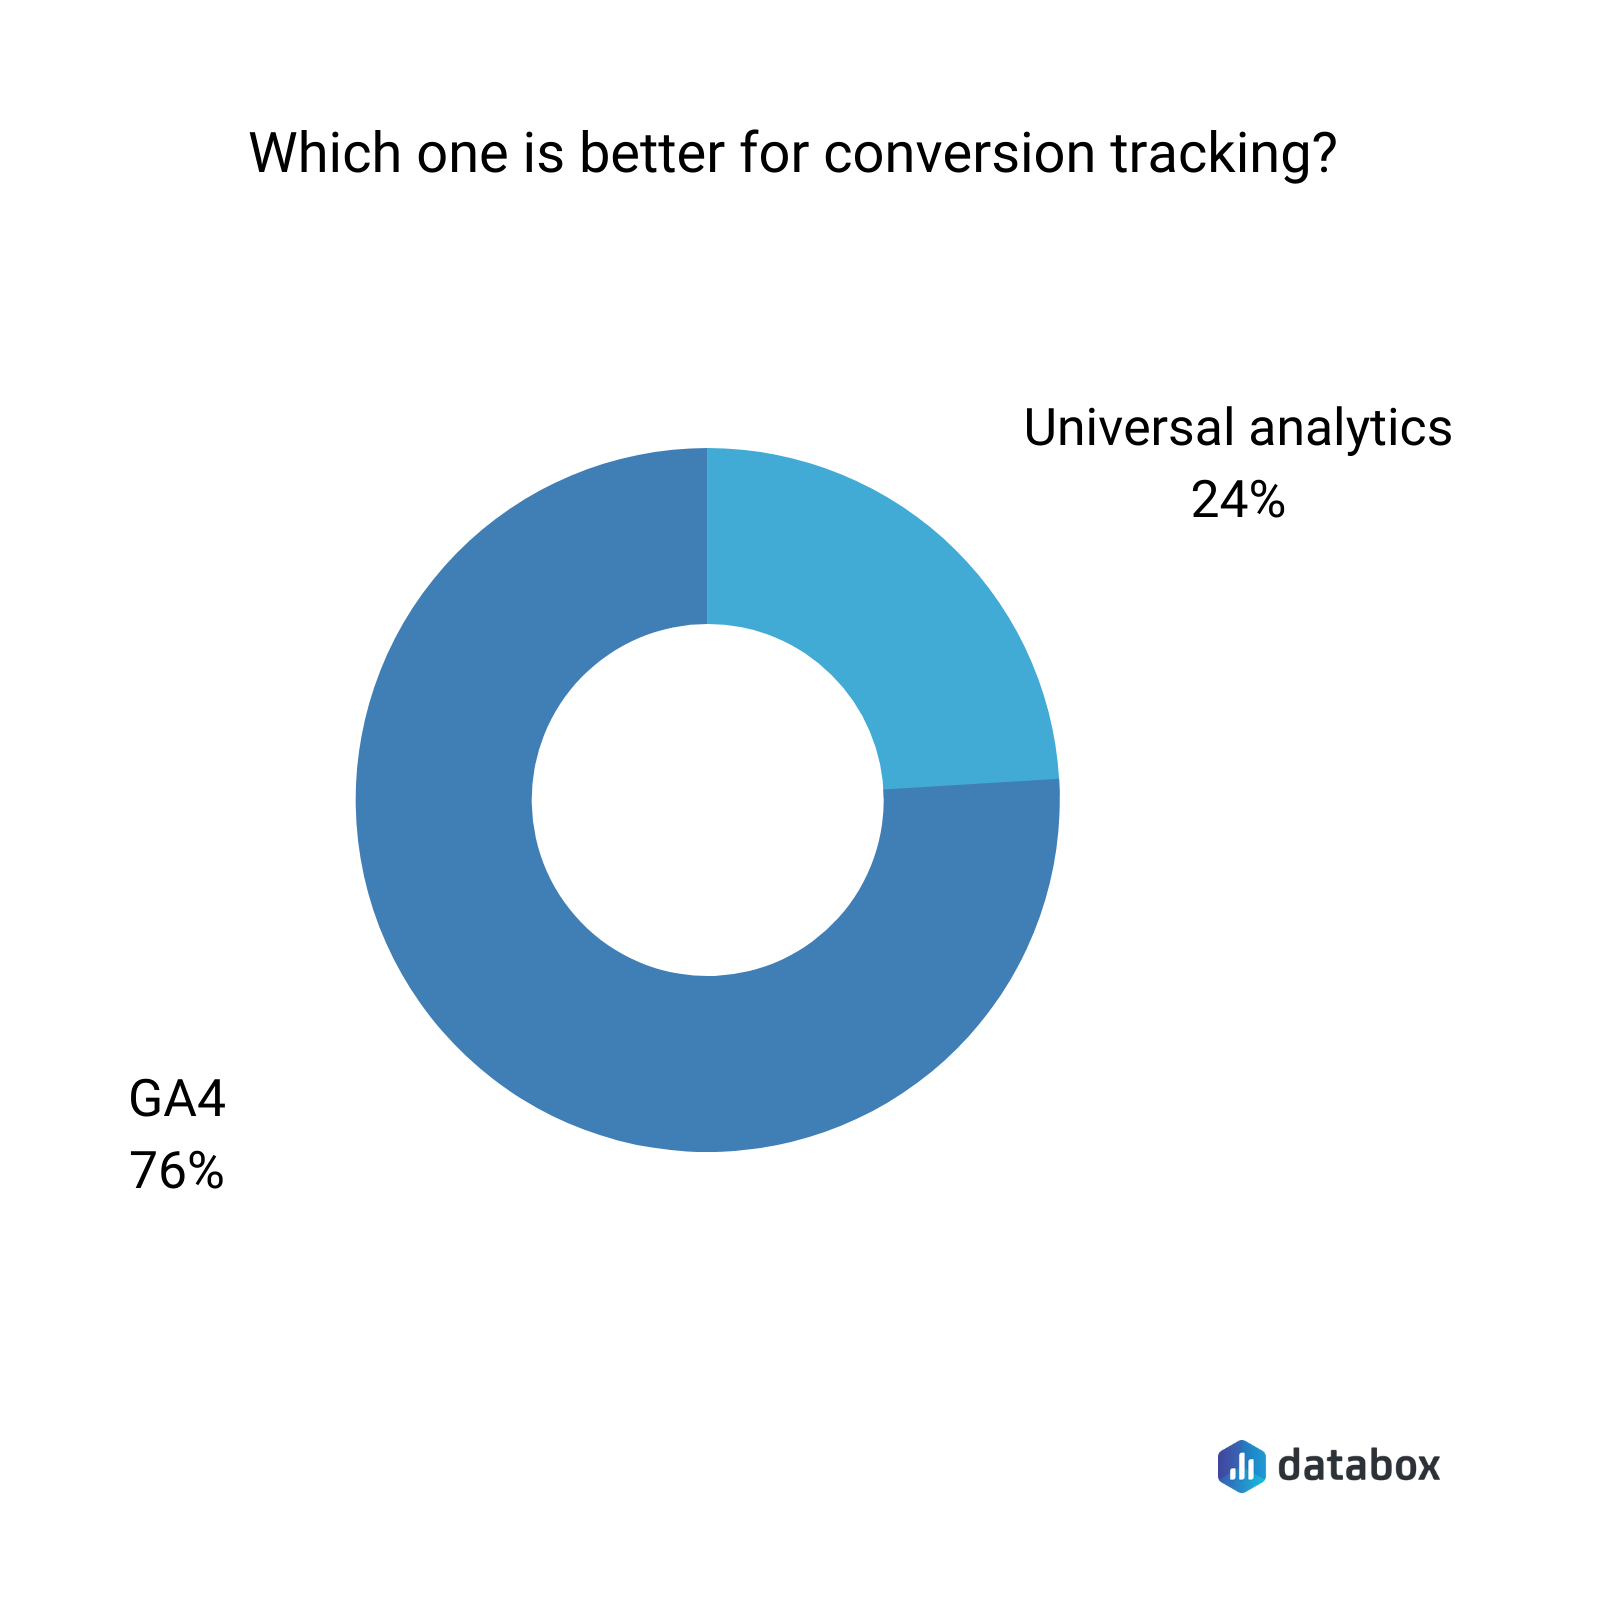 which one is better for conversion tracking